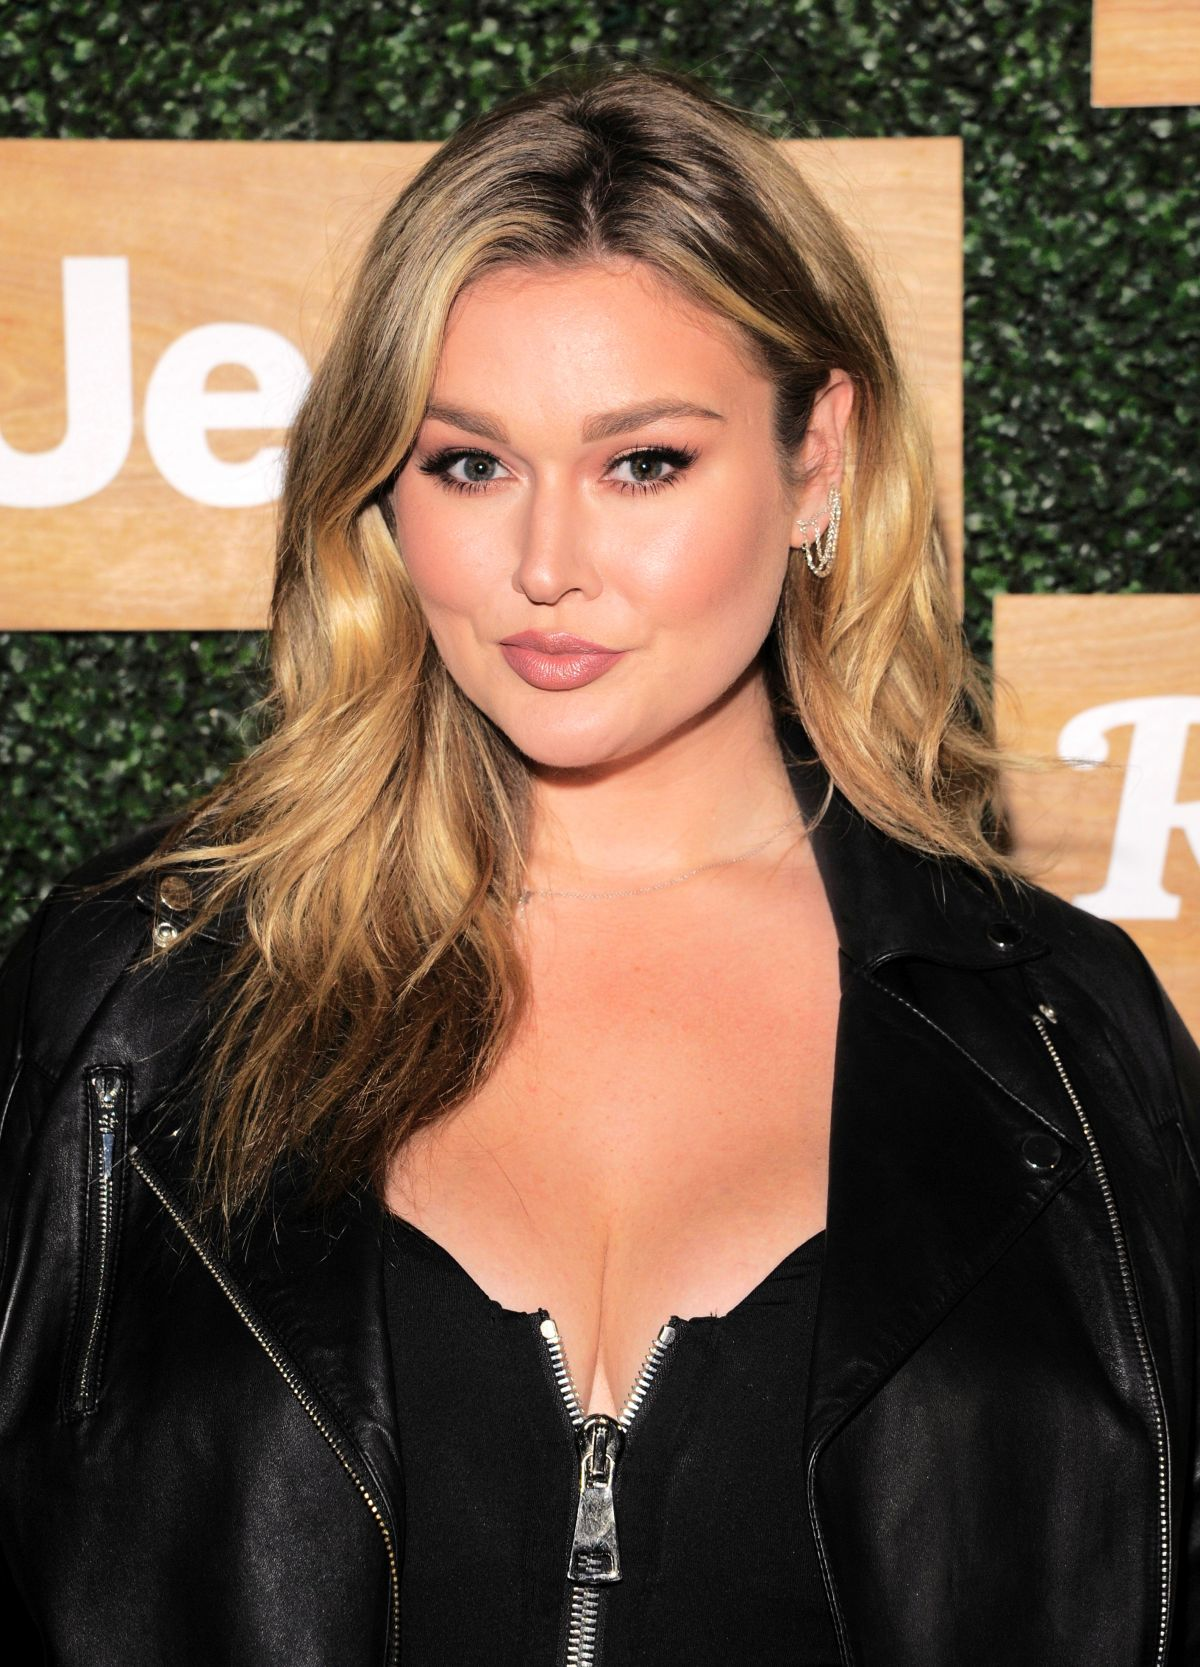 HUNTER MCGRADY at The New Classics Presented by Jeep